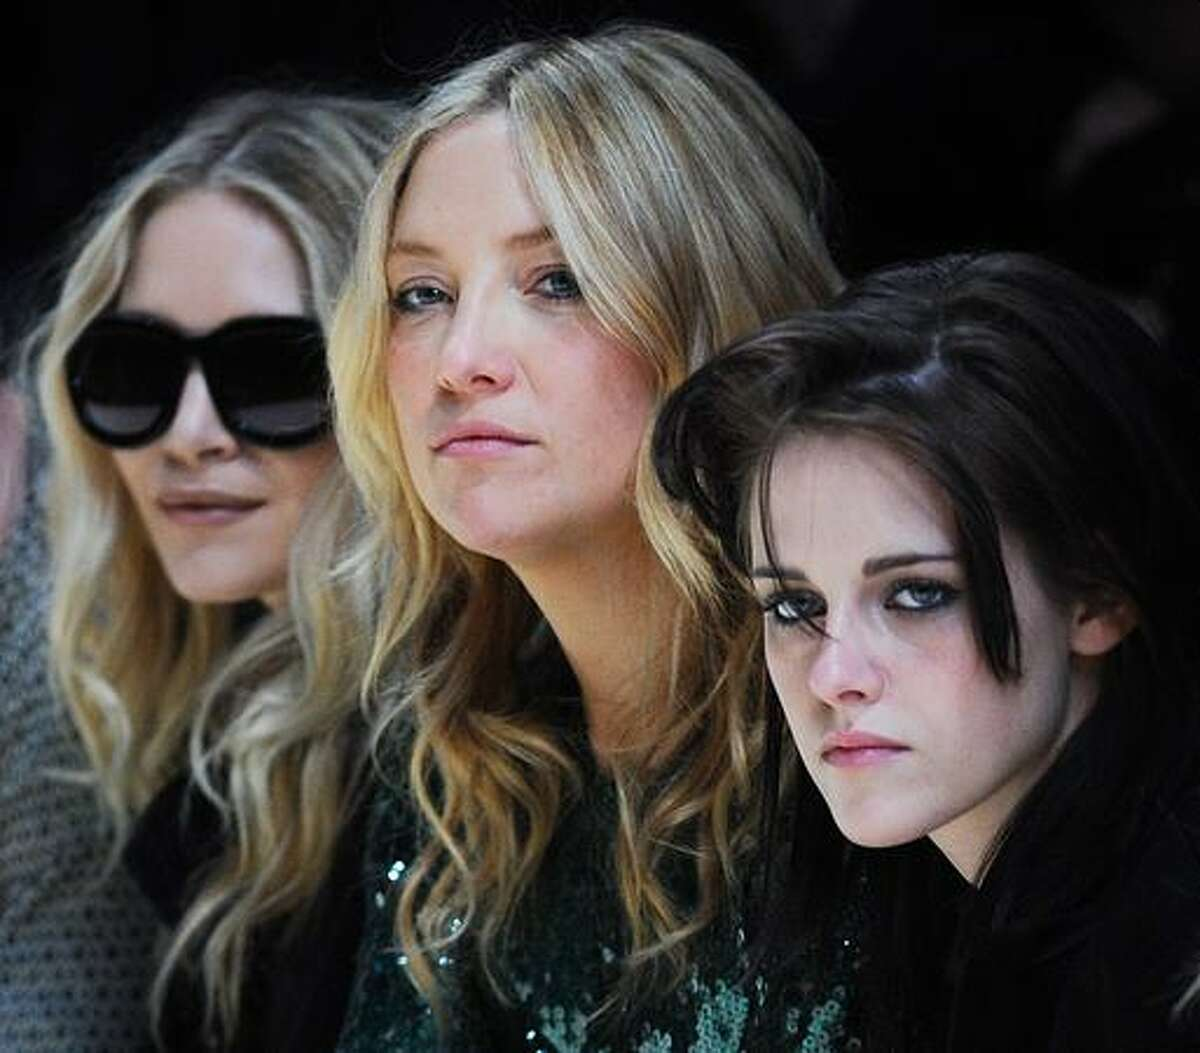 Actresses Mary-Kate Olsen, (L) Kate Hudson (C) and Kristen Stewart (R) watch the Burberry Womenswear fashion show for the Autumn/Winter 2010 collection on the fifth day of the London Fashion Week.